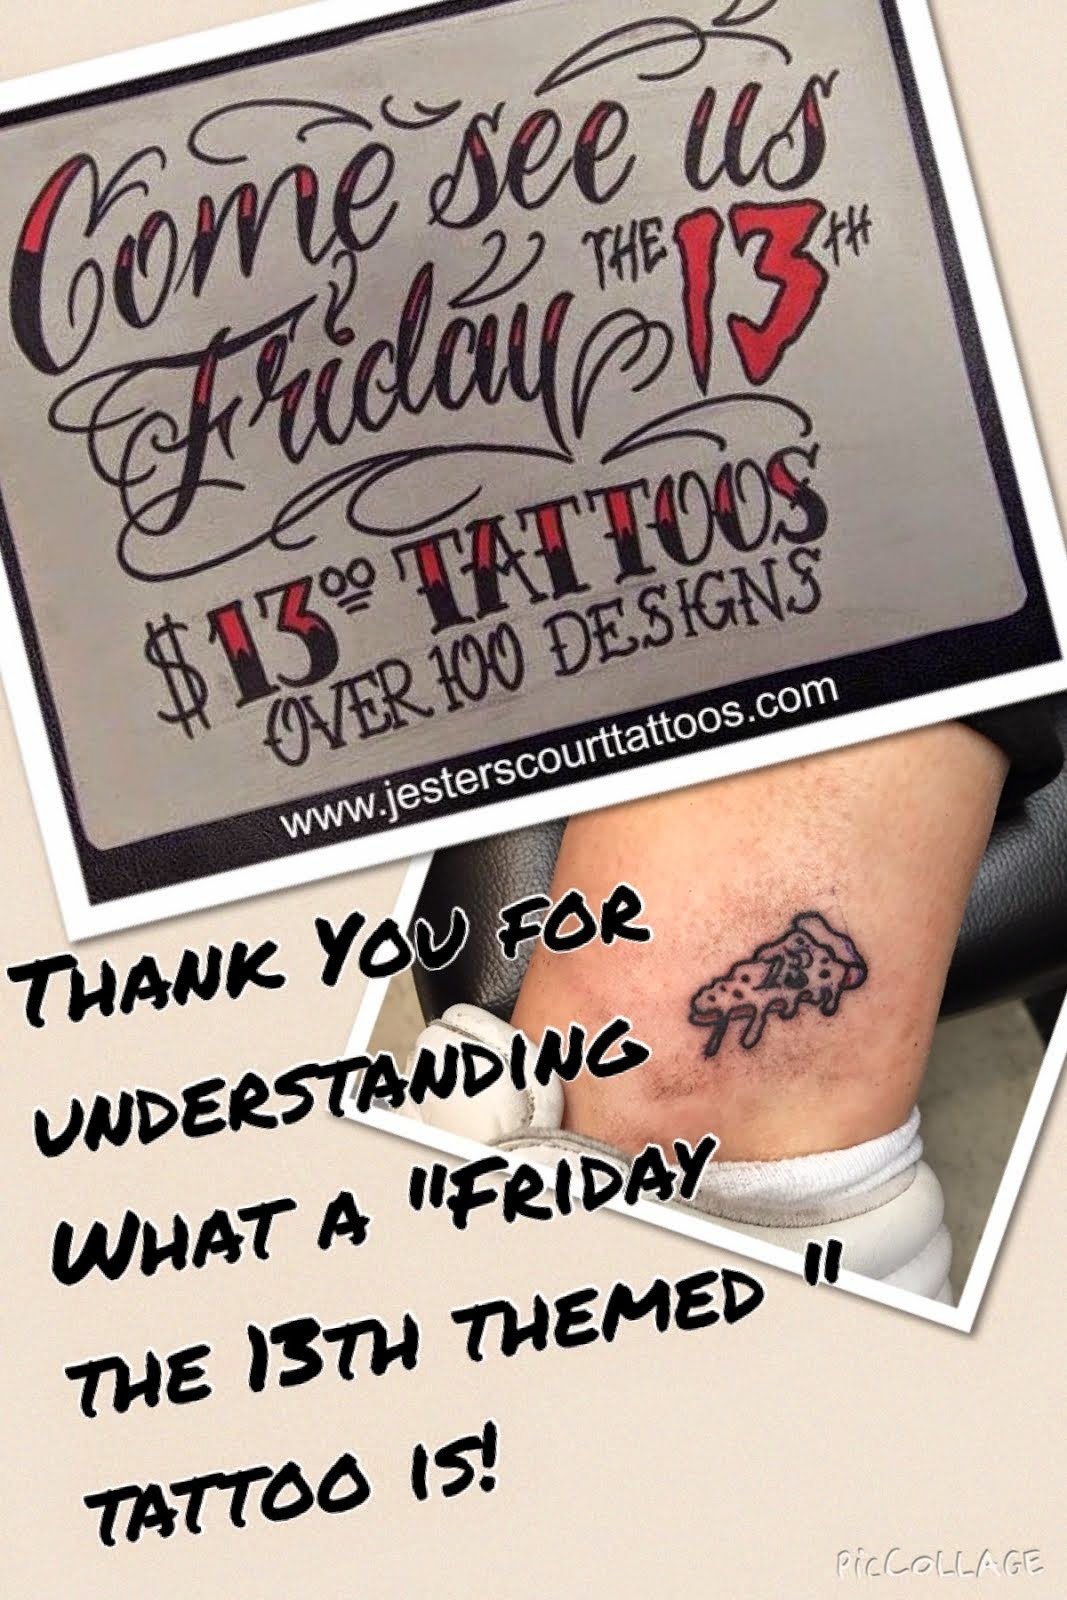 Jesters court tattoos and more friday the 13th special for Black friday tattoo deals